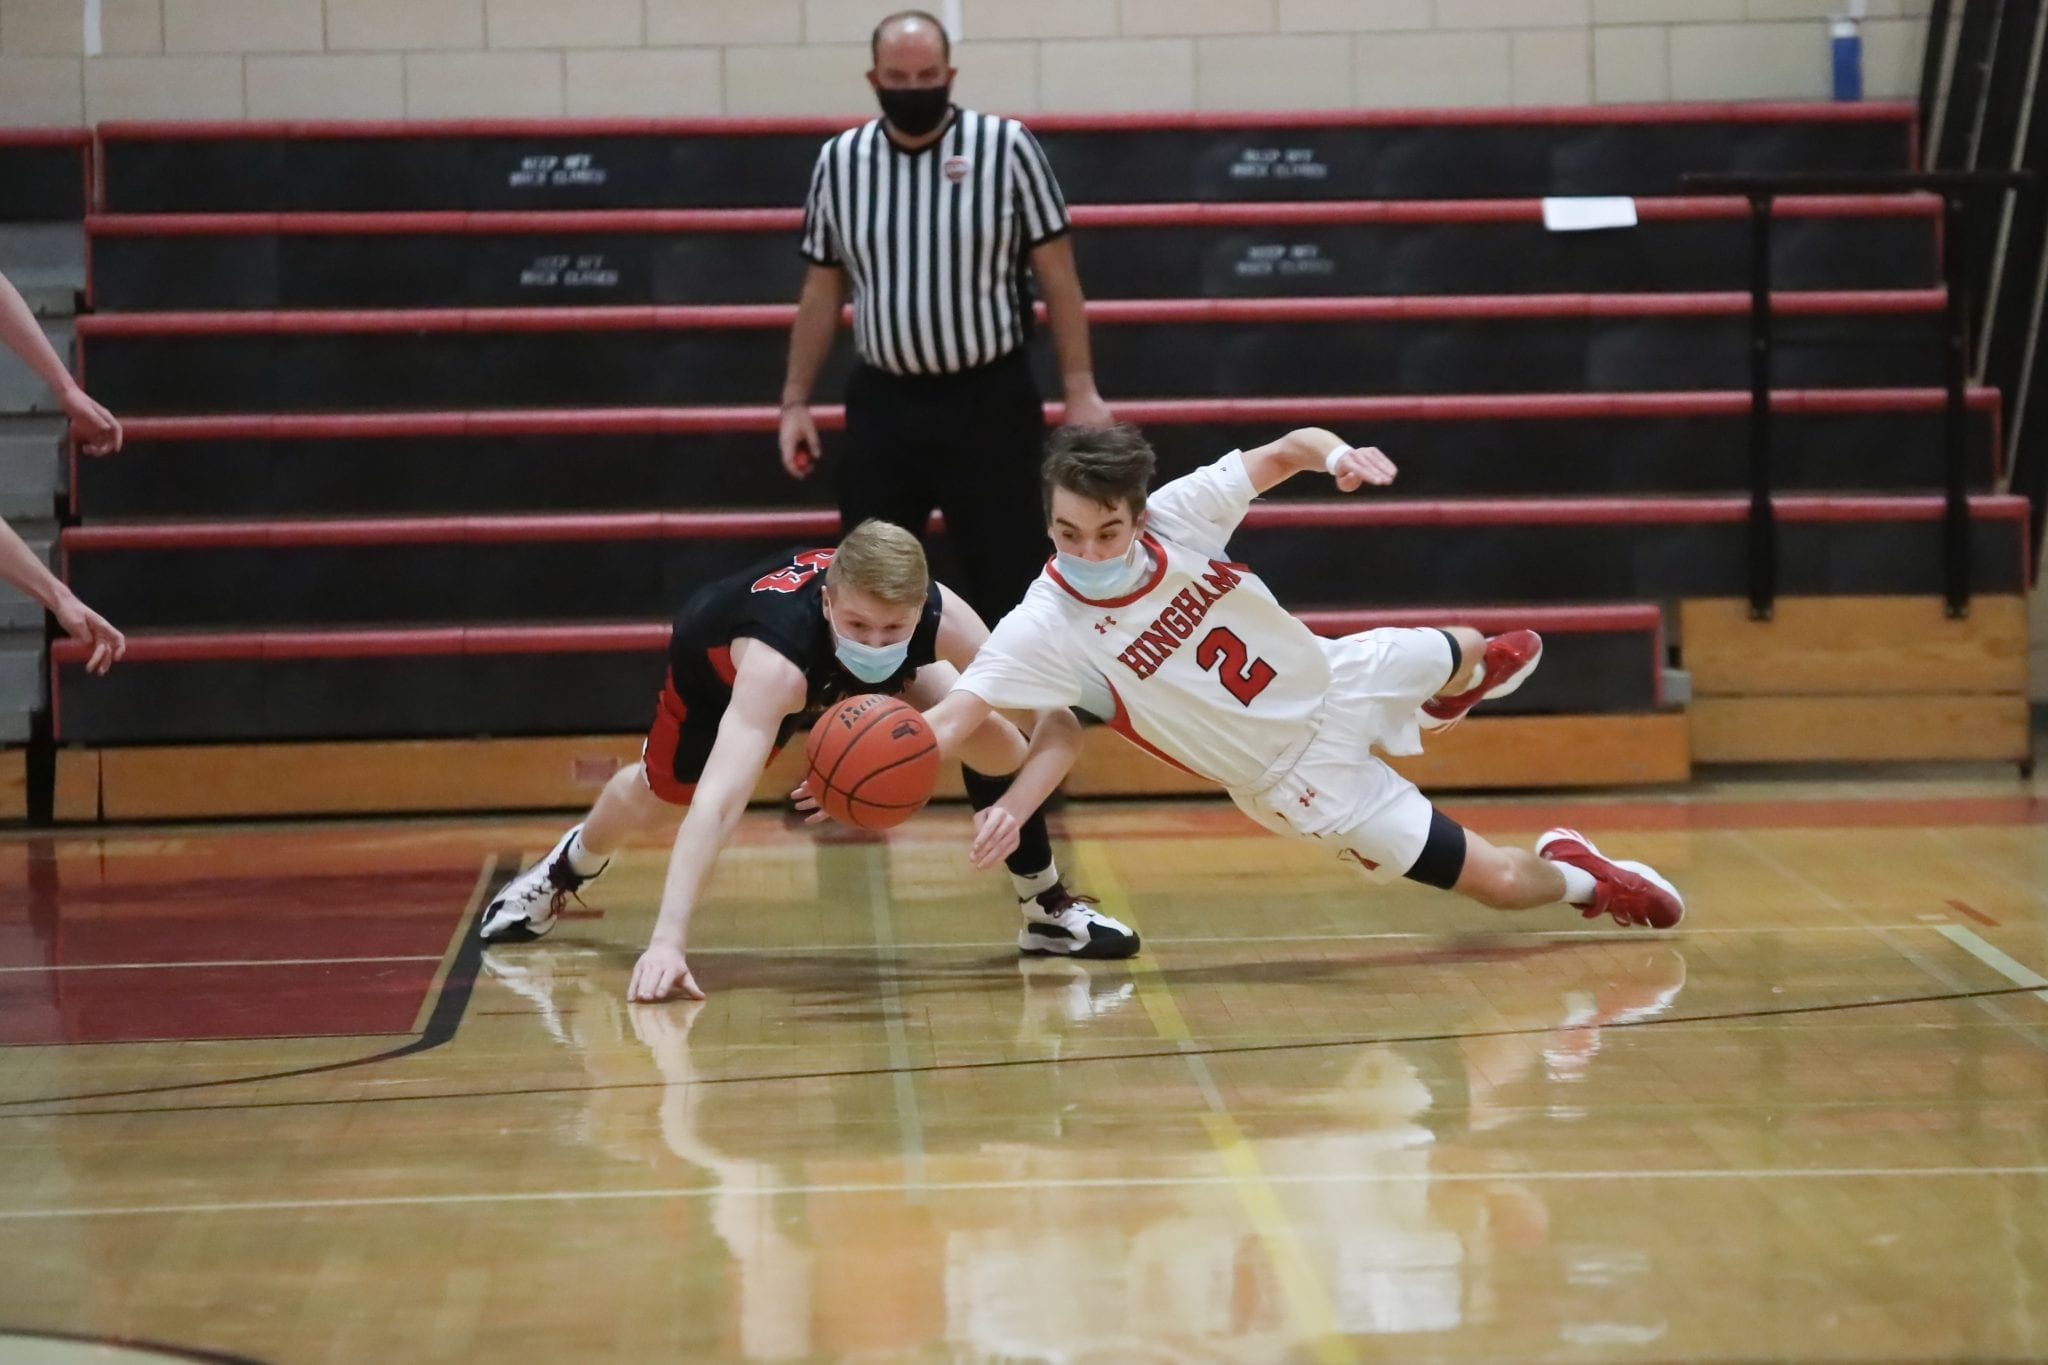 Junior Curtis Murphy dives for a loose ball during the game with Whitman-Hanson